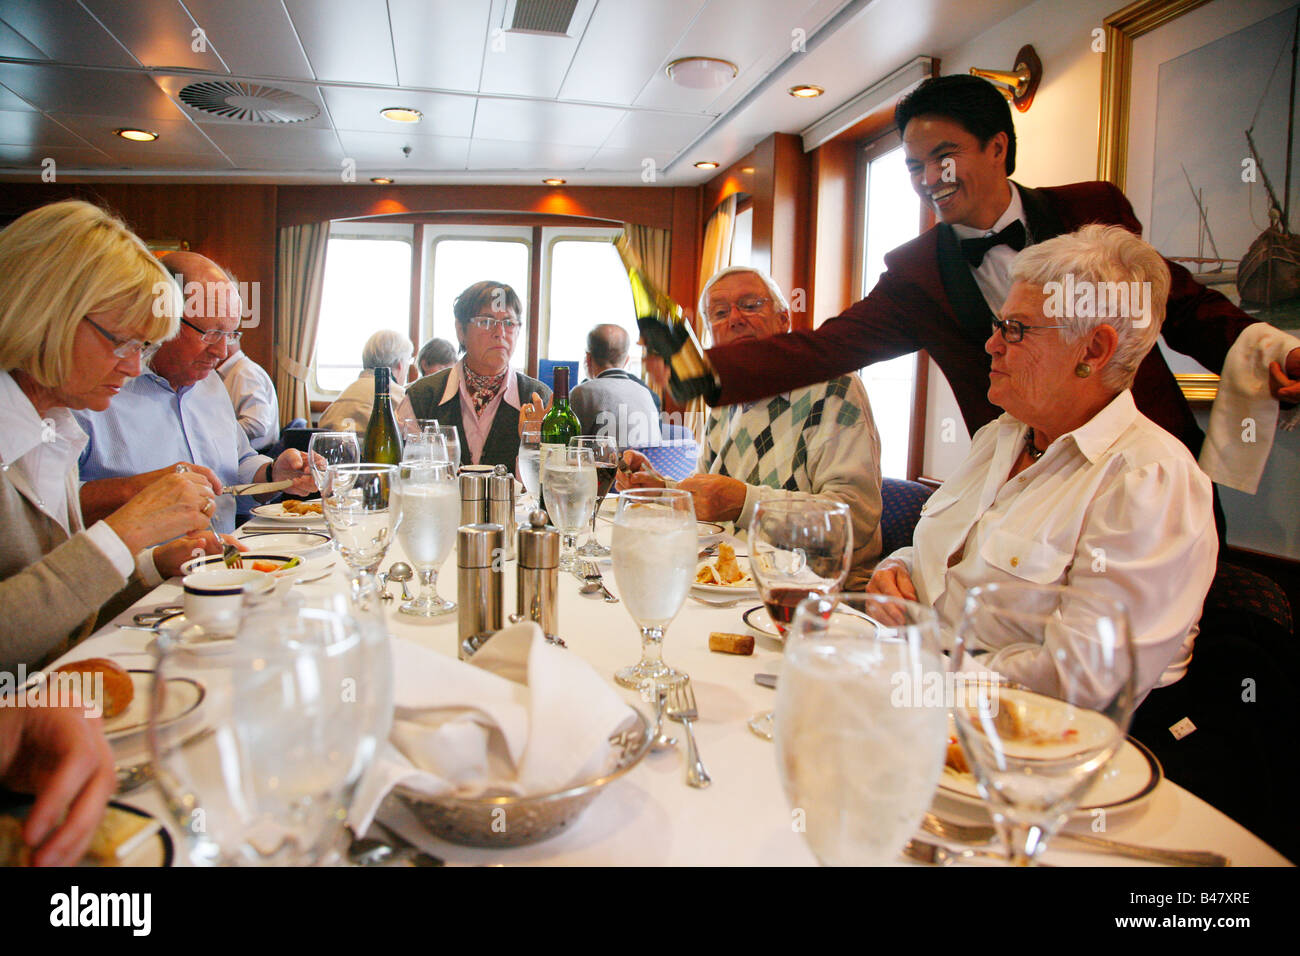 Aug 2008 - People eating on board the Clipper Adventurer ...